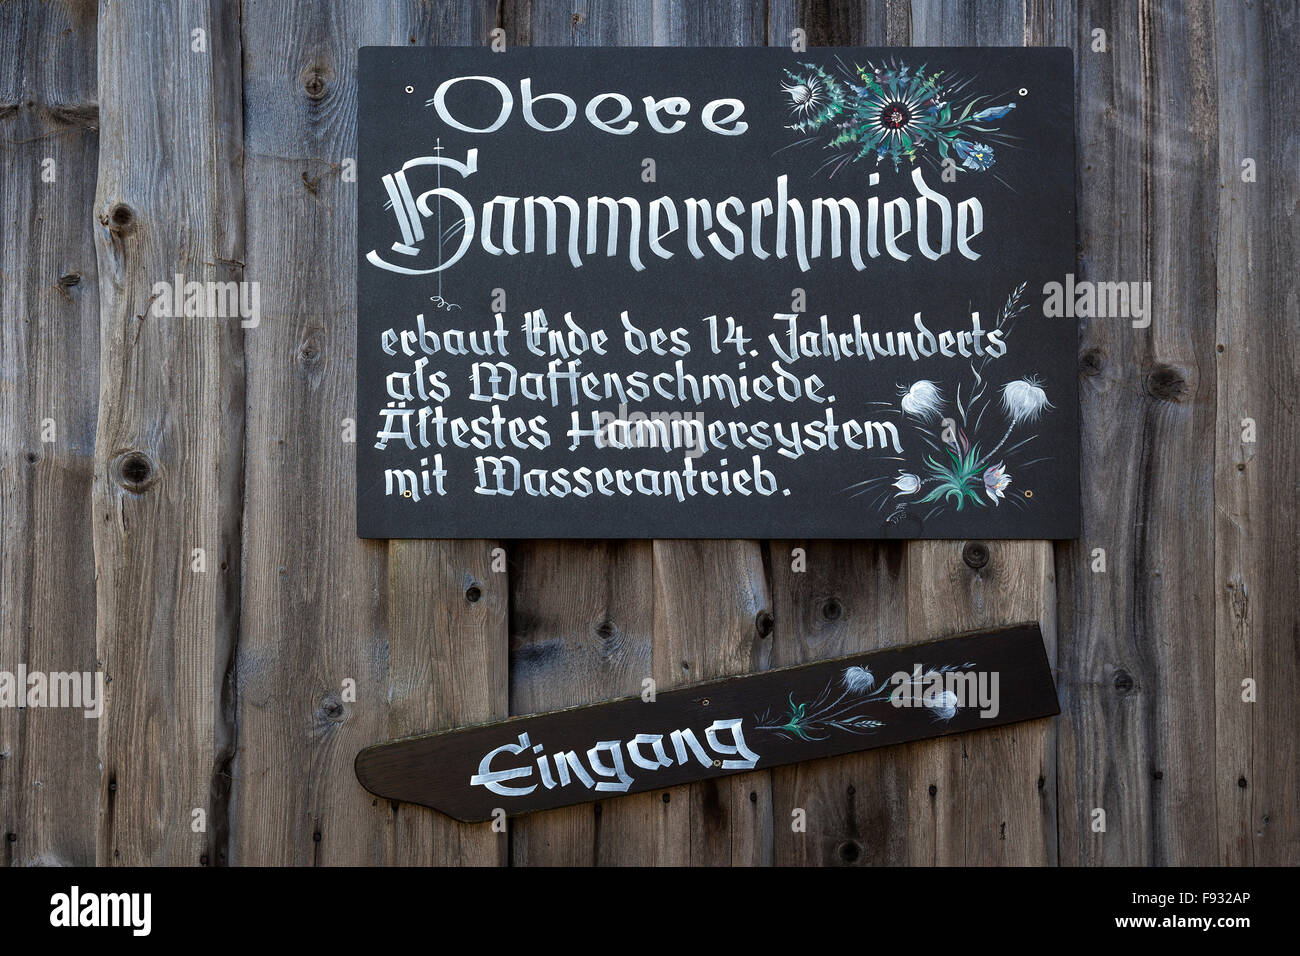 Sign on an old forge, Obere Hammerschmiede, Bad Oberdorf in Bad Hindelang, Allgäu, Bavaria, Germany - Stock Image